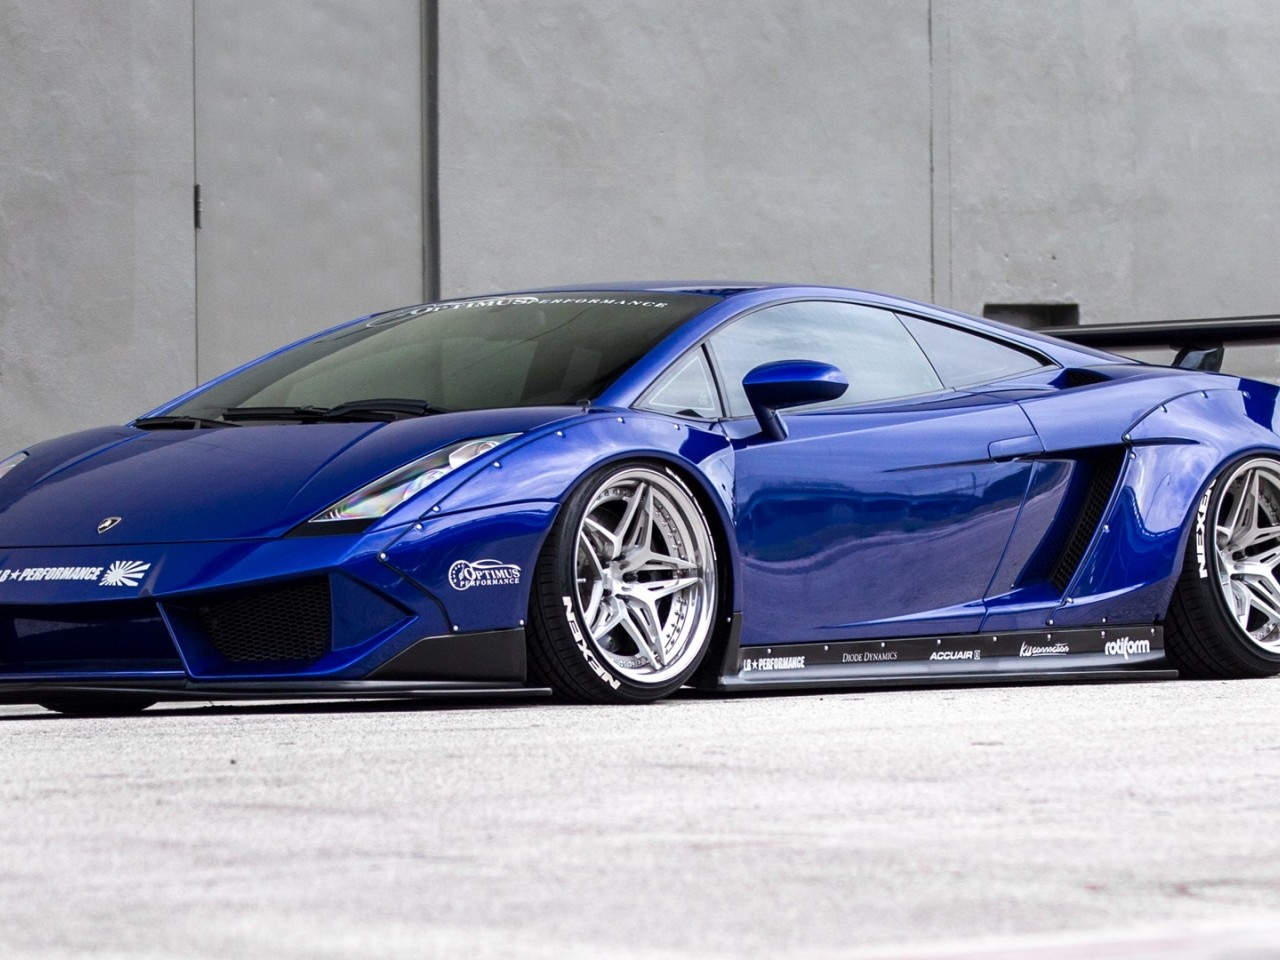 Blue Lamborghini Gallardo HD Wallpaper